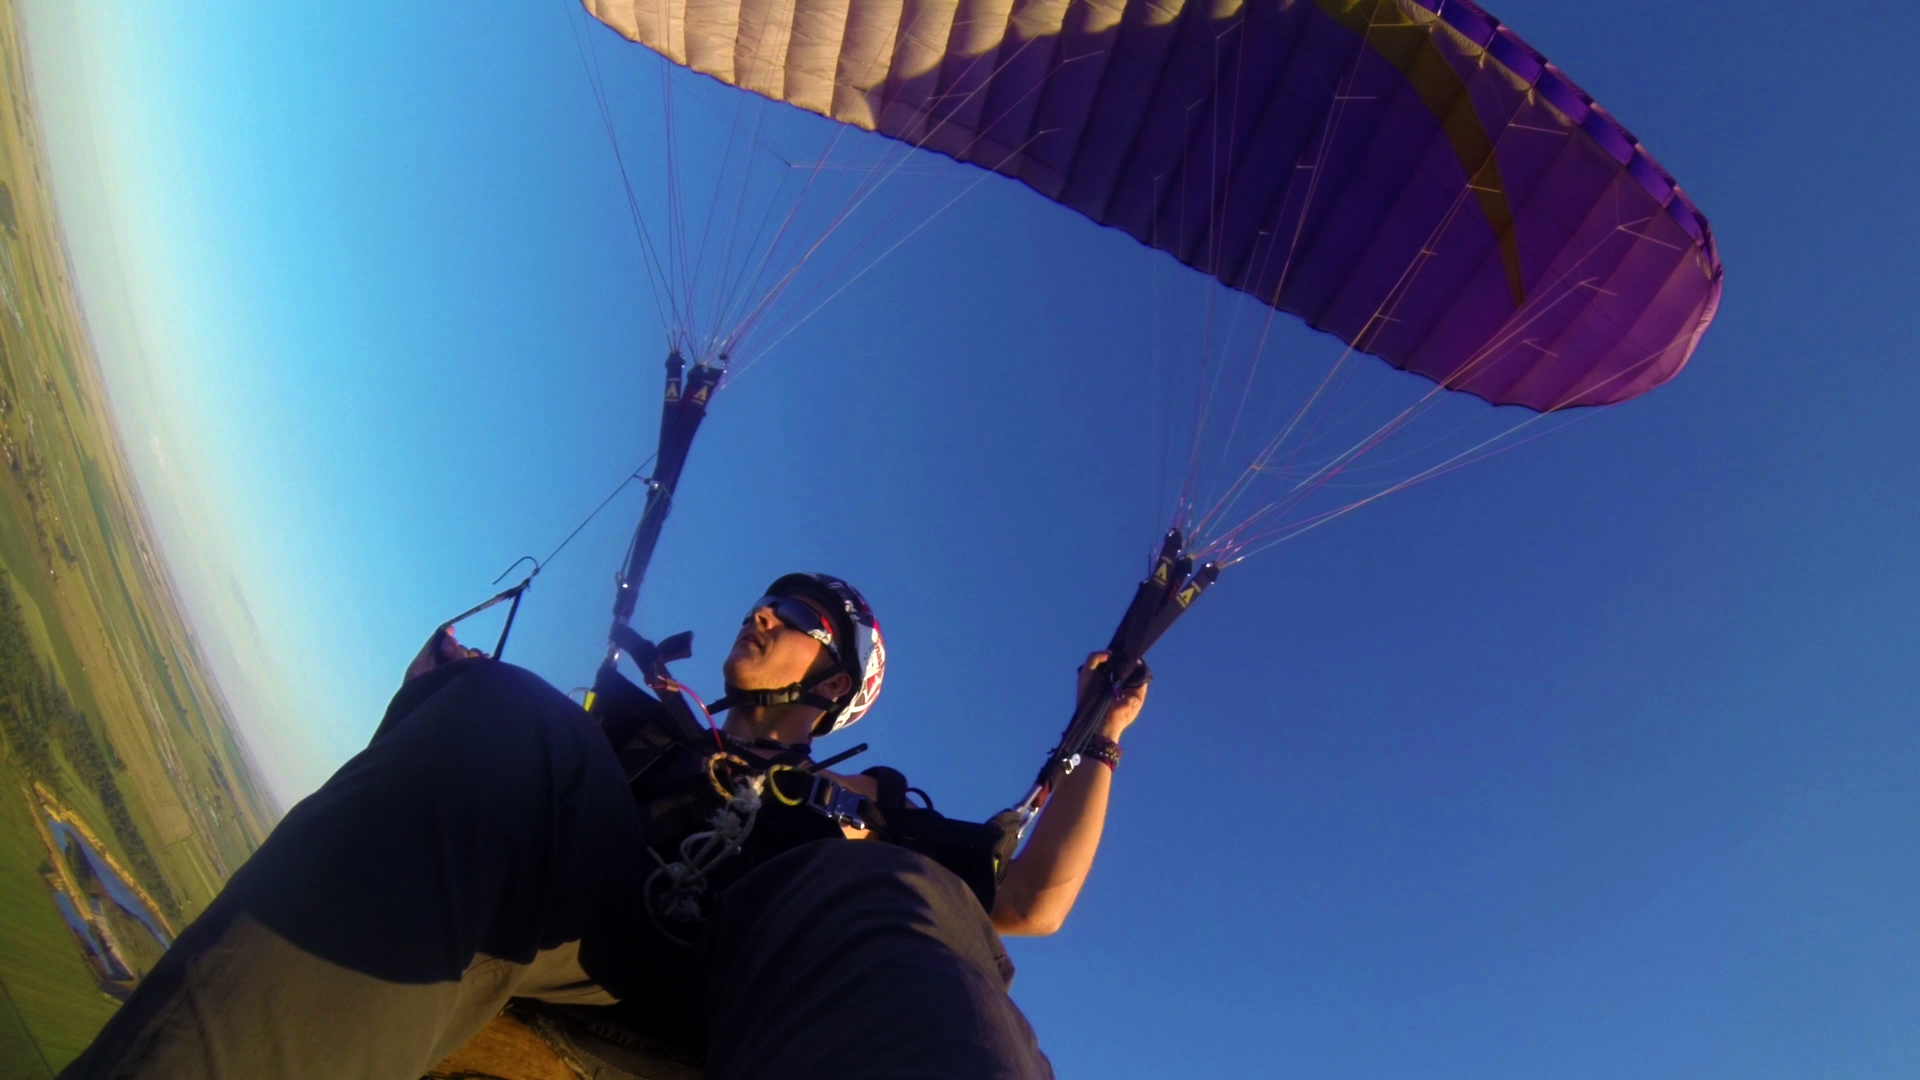 Paul Teasdale paragliding in South Africa